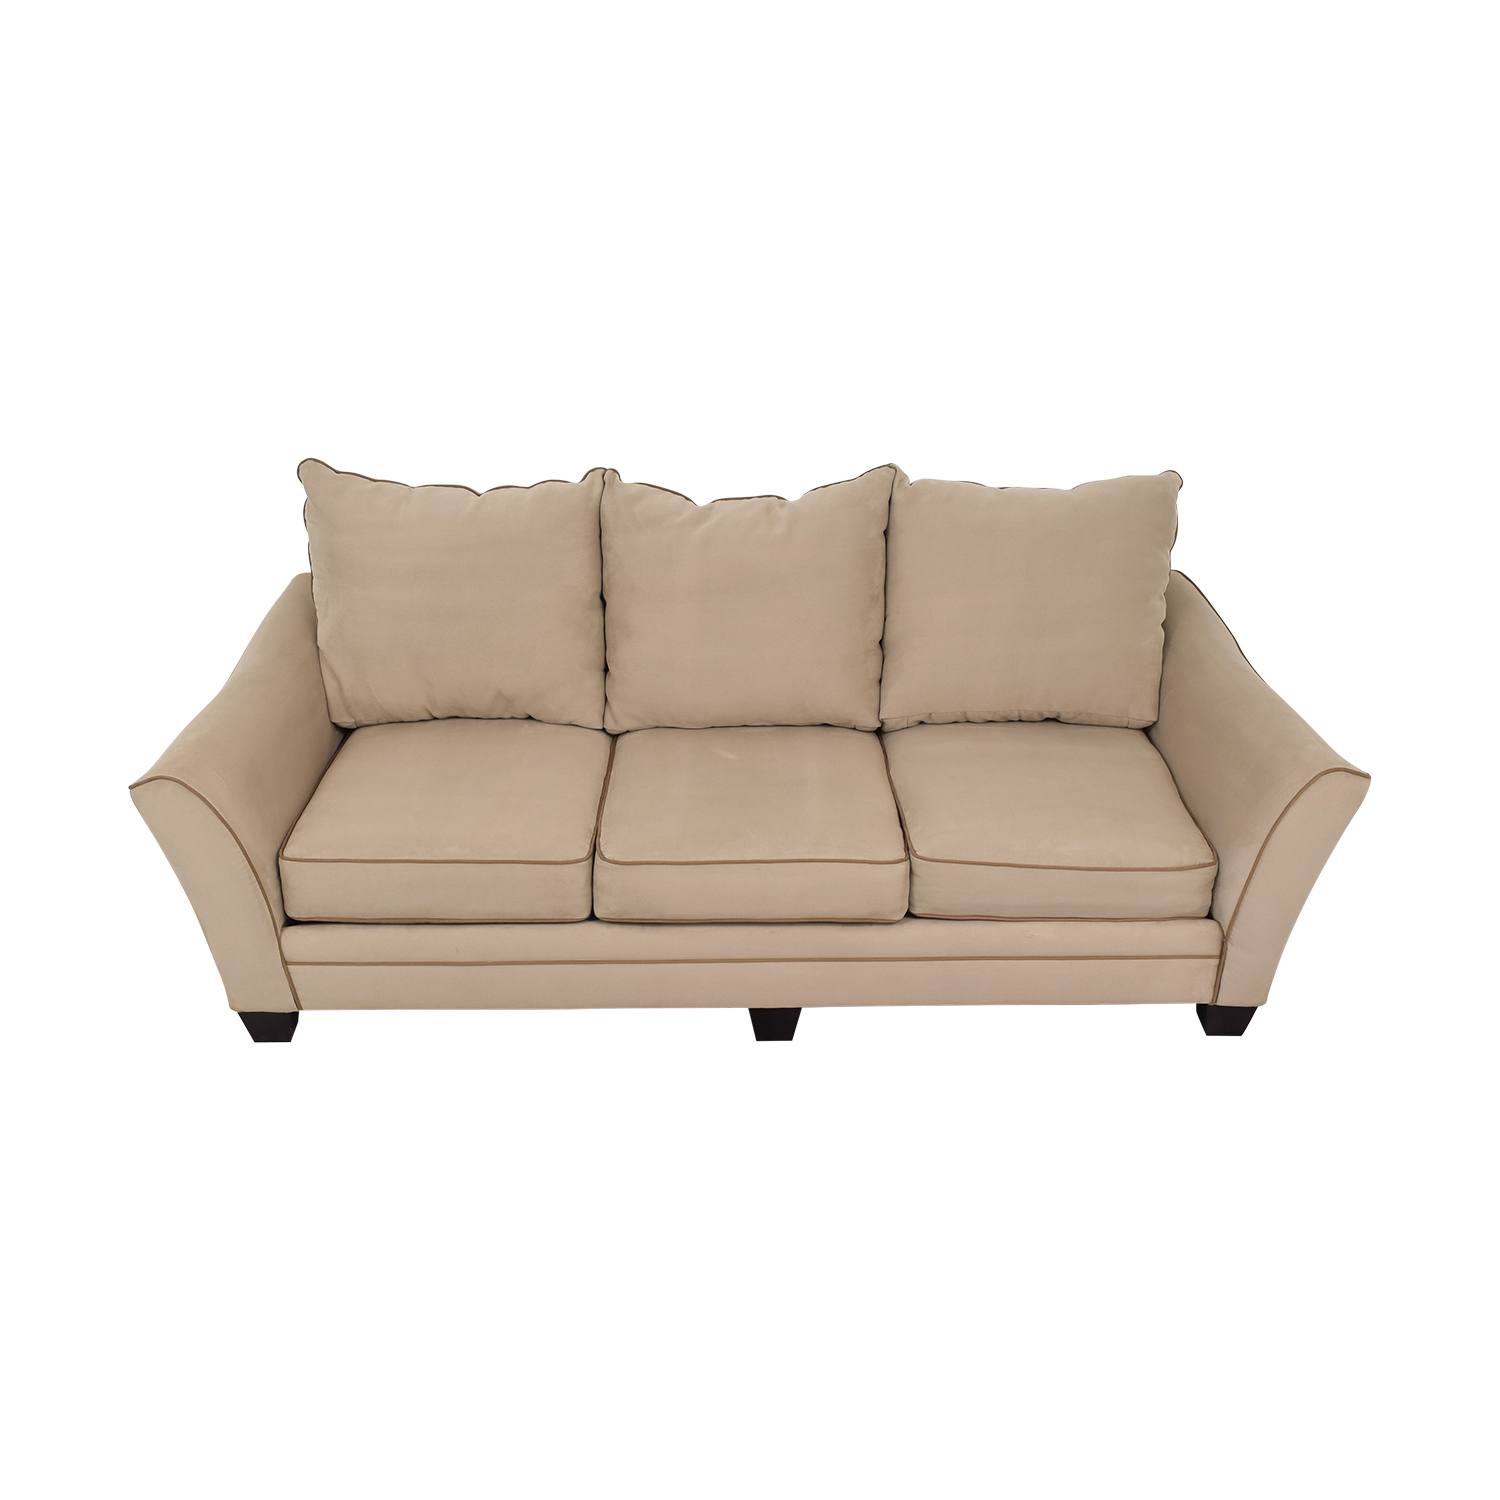 Raymour & Flanigan Raymour & Flanigan Foresthill Sofa for sale